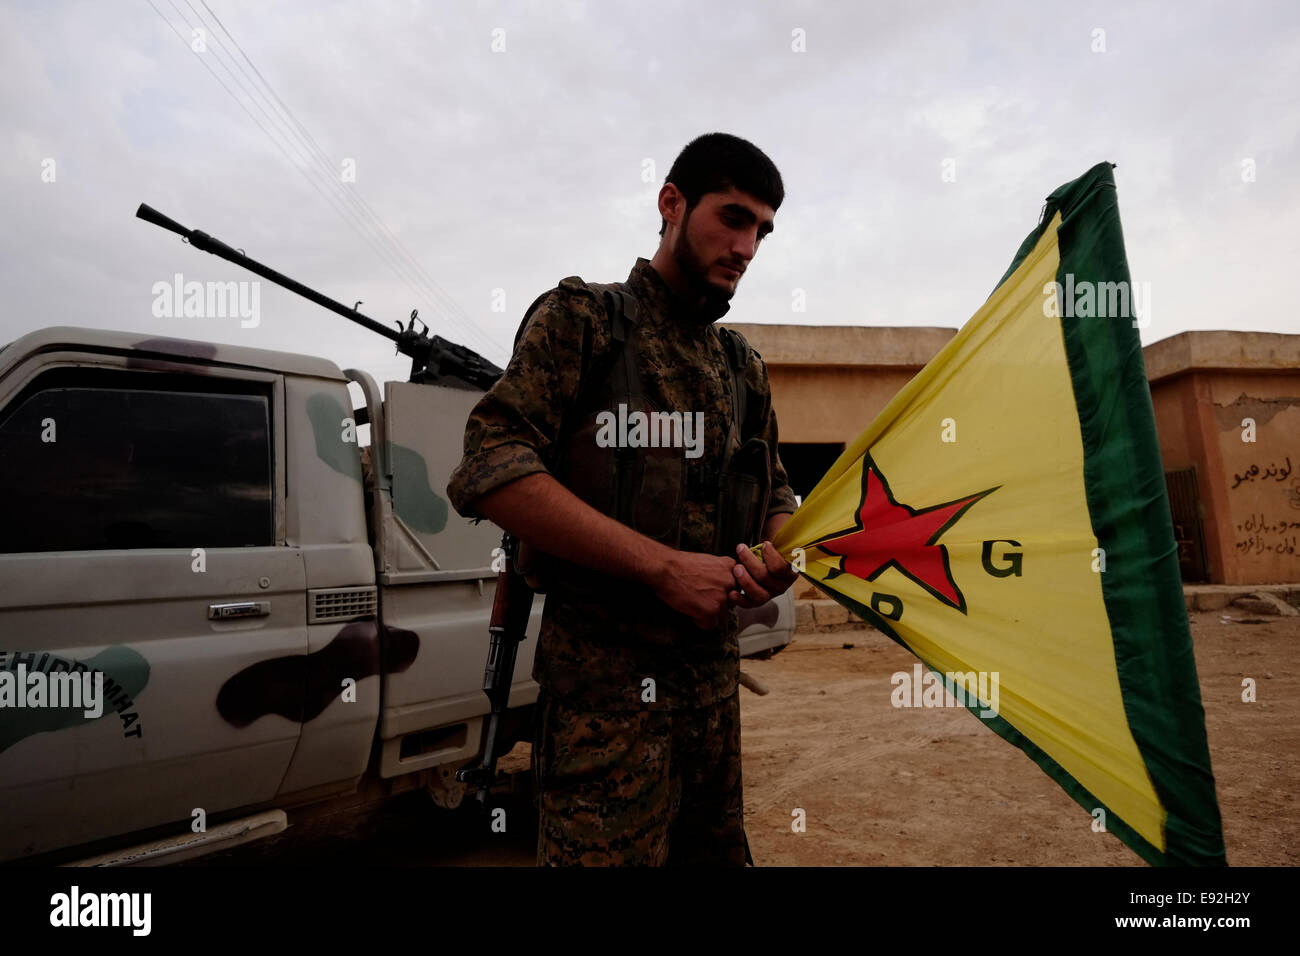 A Kurdish fighter folds the official flag of the Kurdish People's Protection Units YPG in a military base in Al Stock Photo